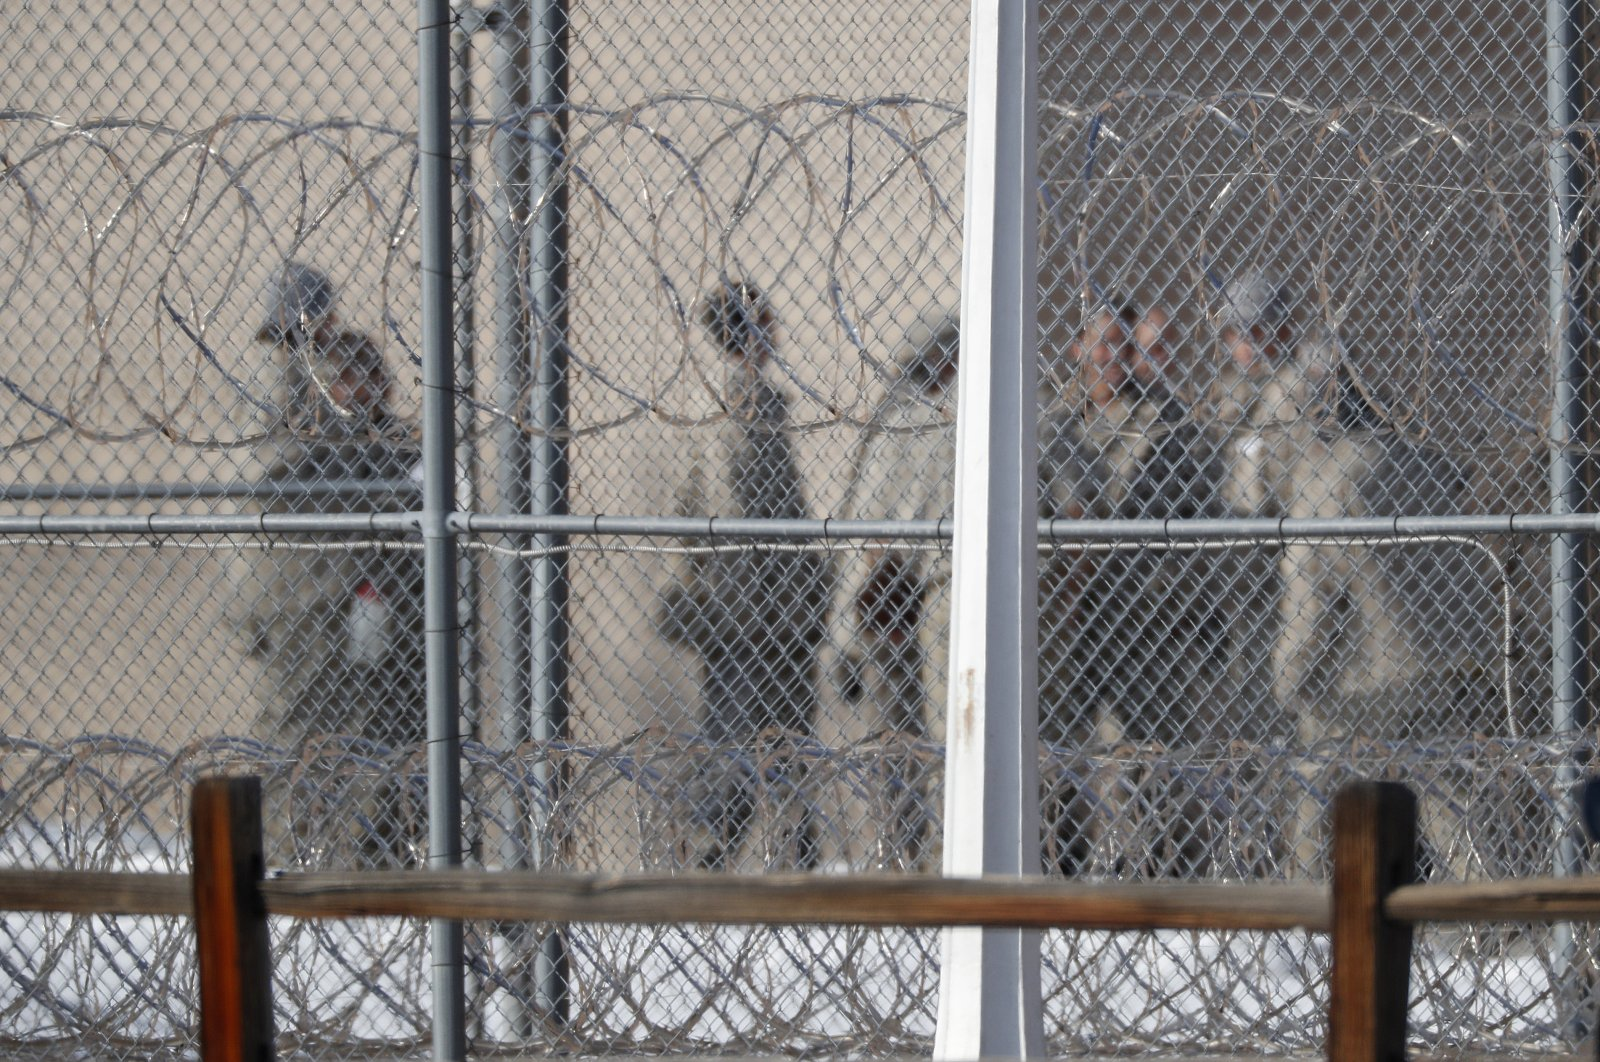 Prisoners stand outside a federal correctional institution in Englewood, Colorado, U.S. Feb. 18, 2020. (AP Photo)